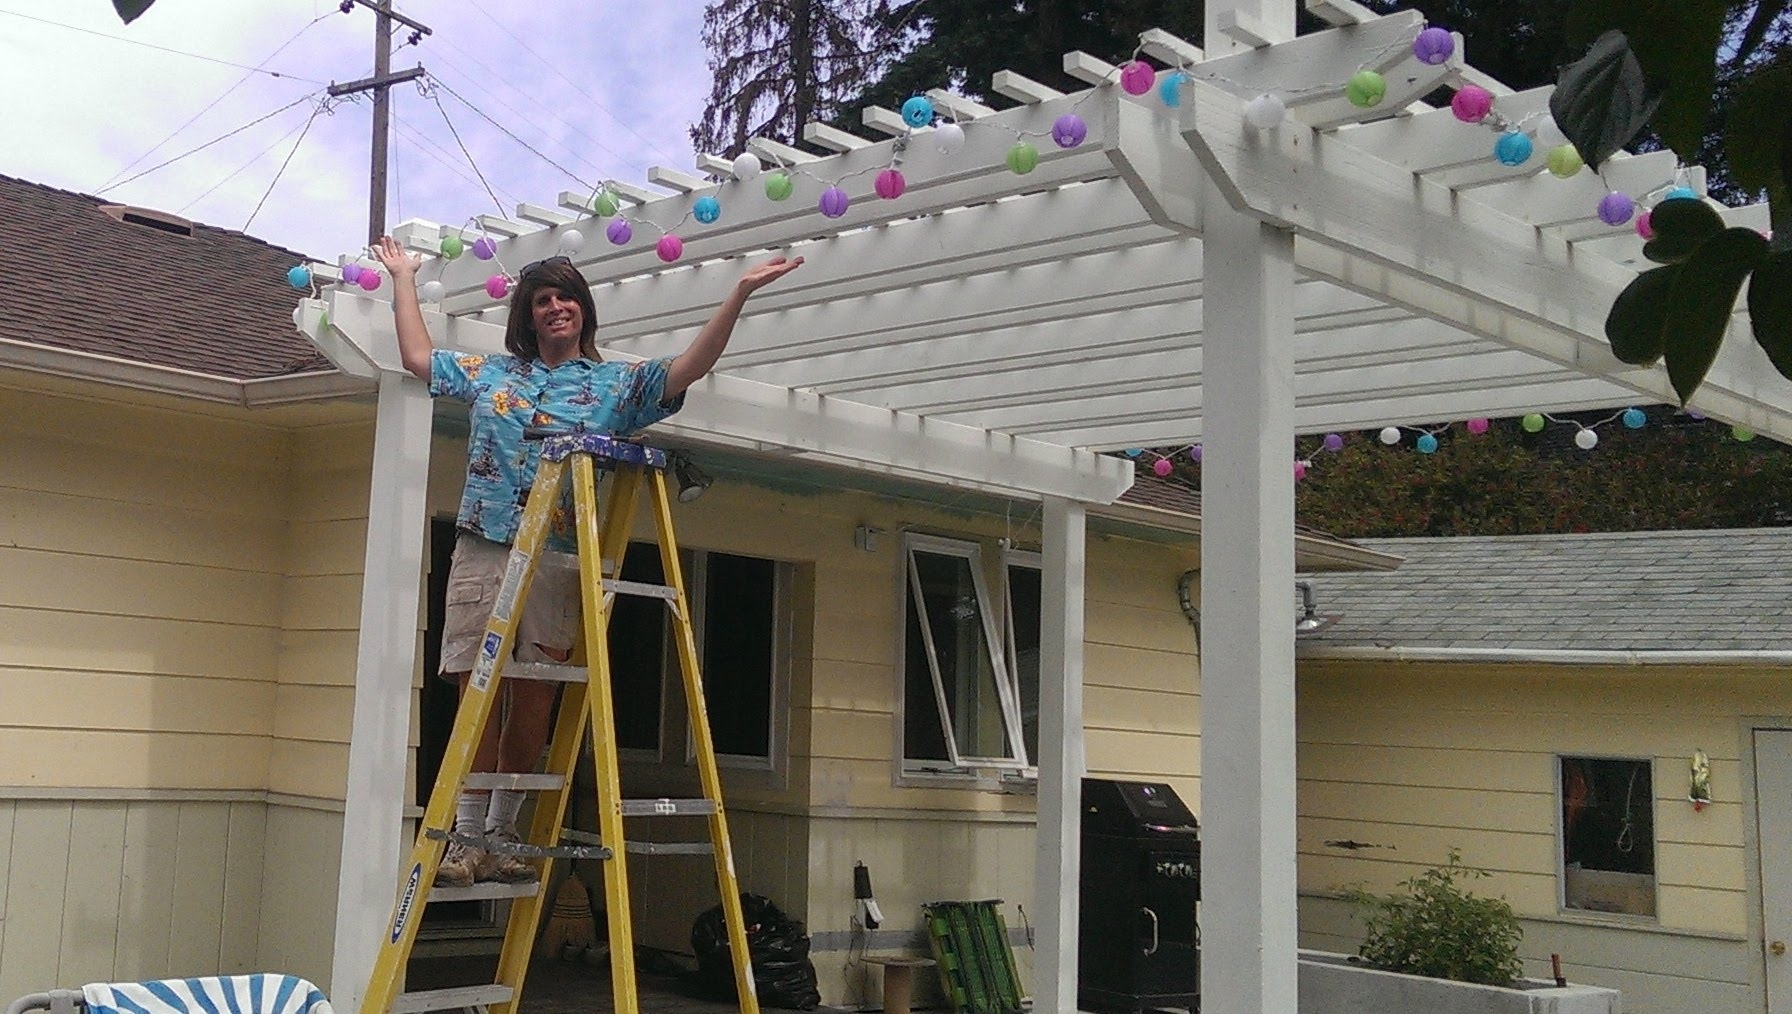 Hanging Outdoor Lights For A Party Pertaining To Recent How To Hang Outdoor Party Lightsweekend Warrior Project – Youtube (Gallery 9 of 20)